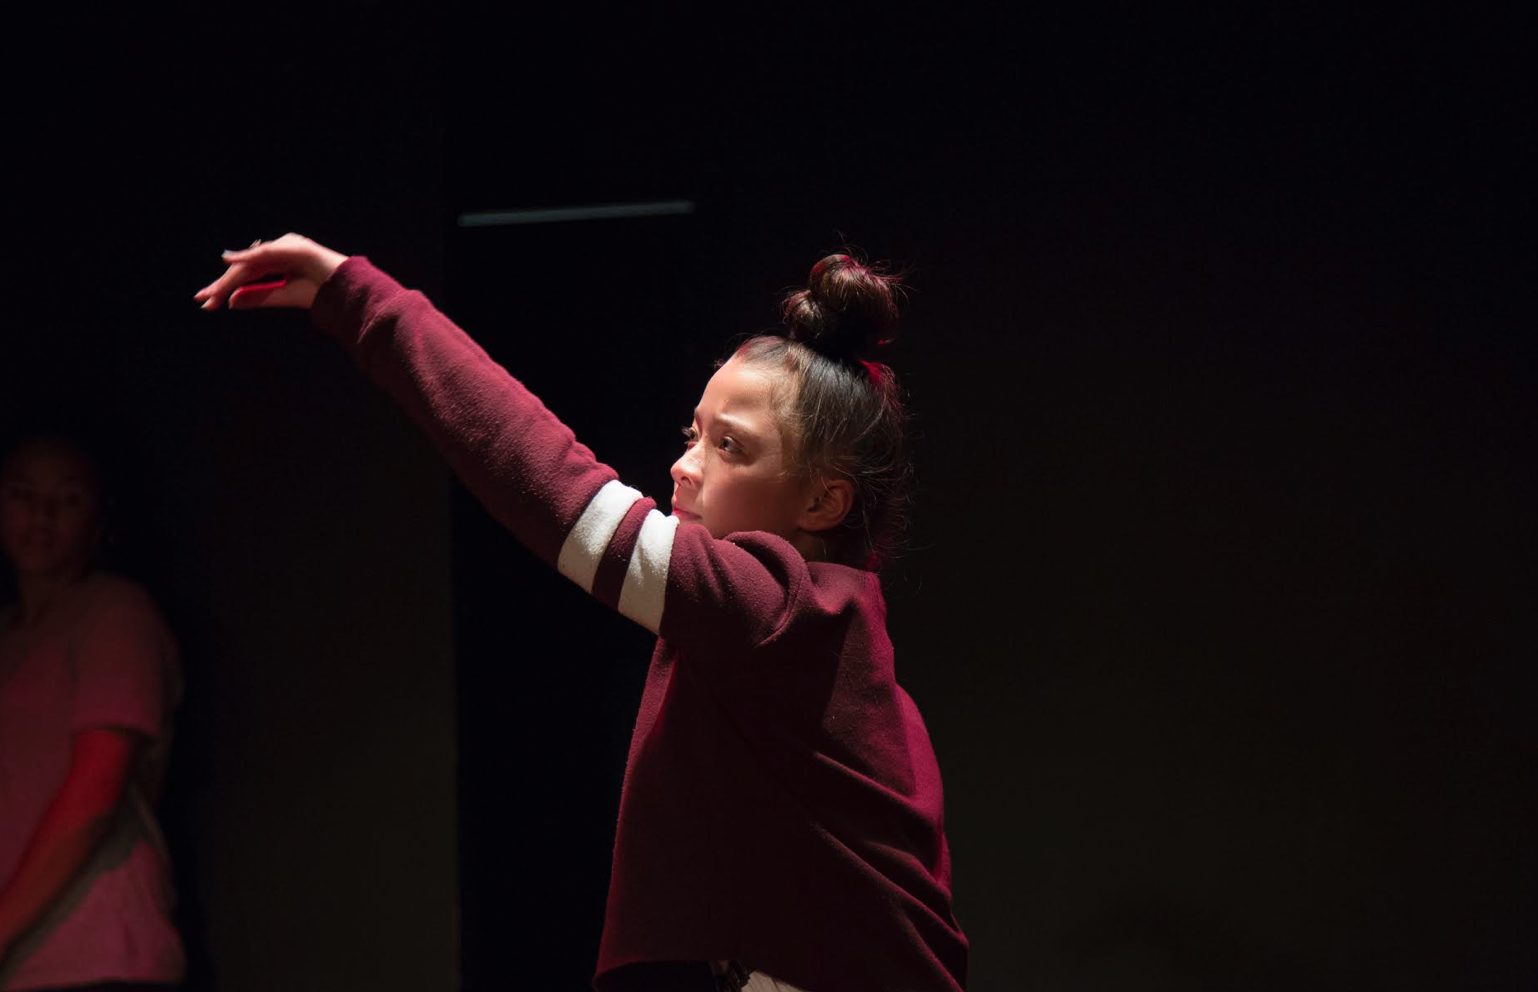 The Liberal Agenda – South Auckland rangatahi prepare a unique theatrical production   The Daily Blog